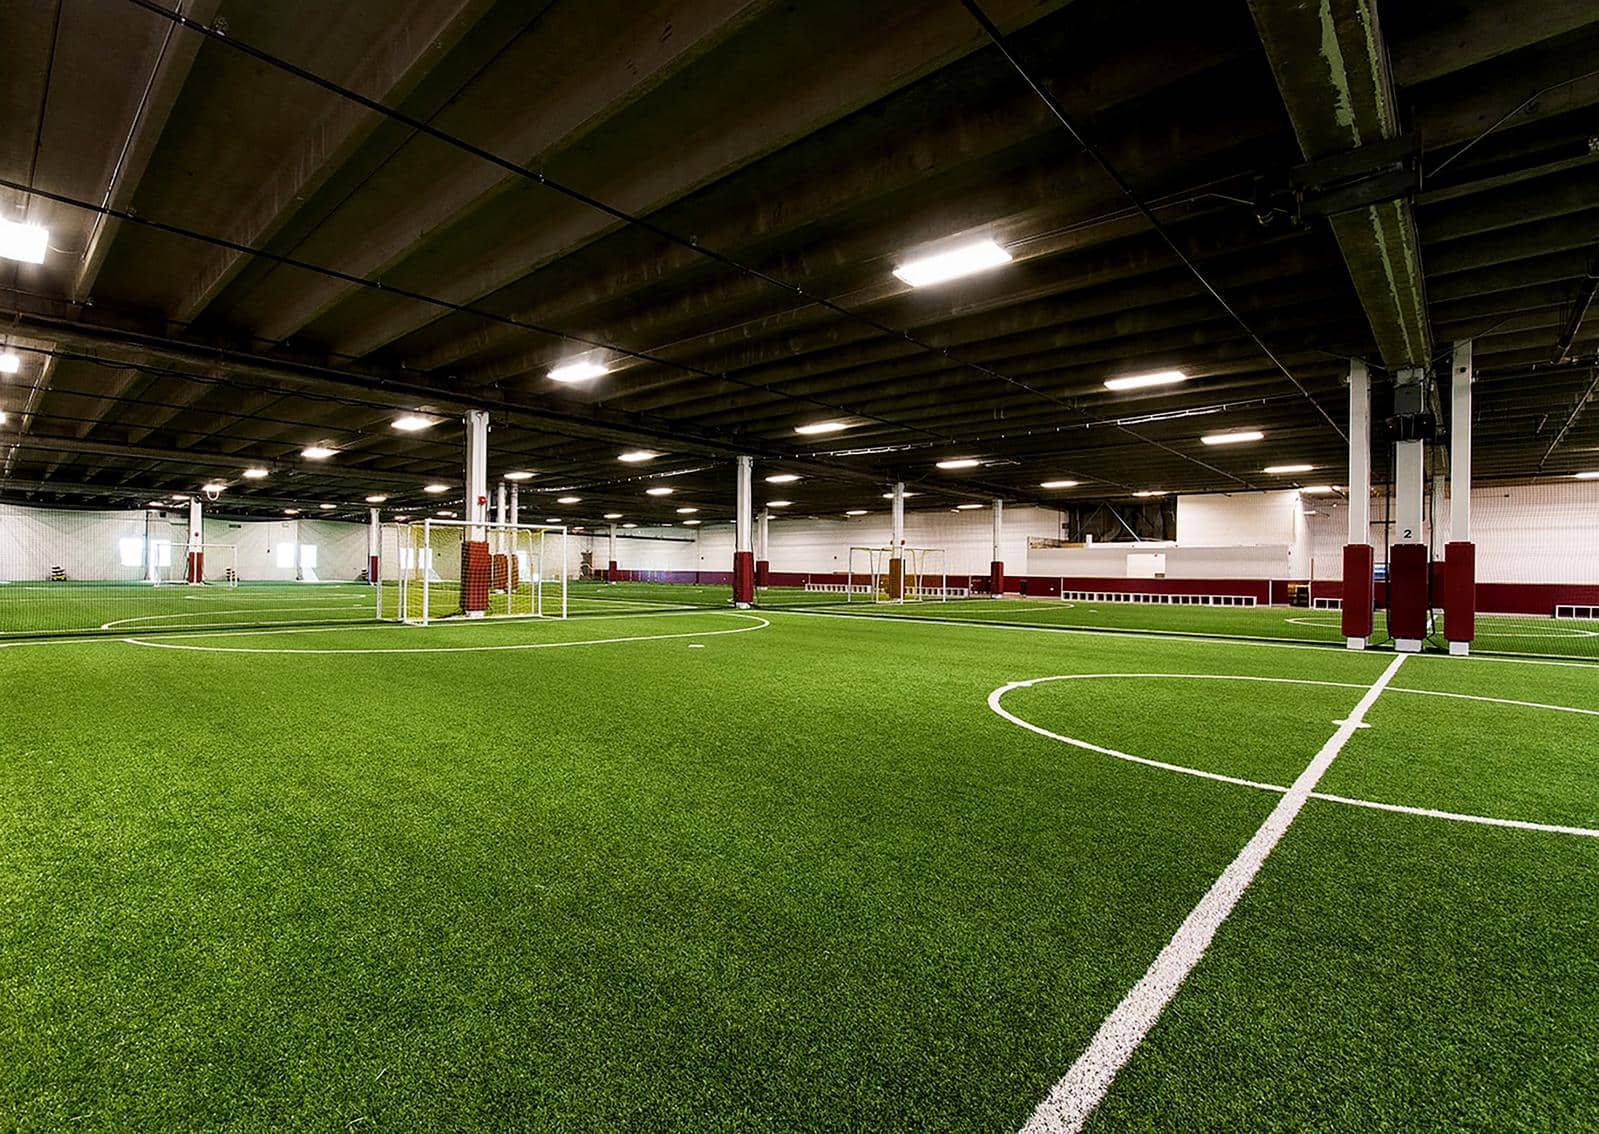 Cost to build an Artificial Turf Sports Field